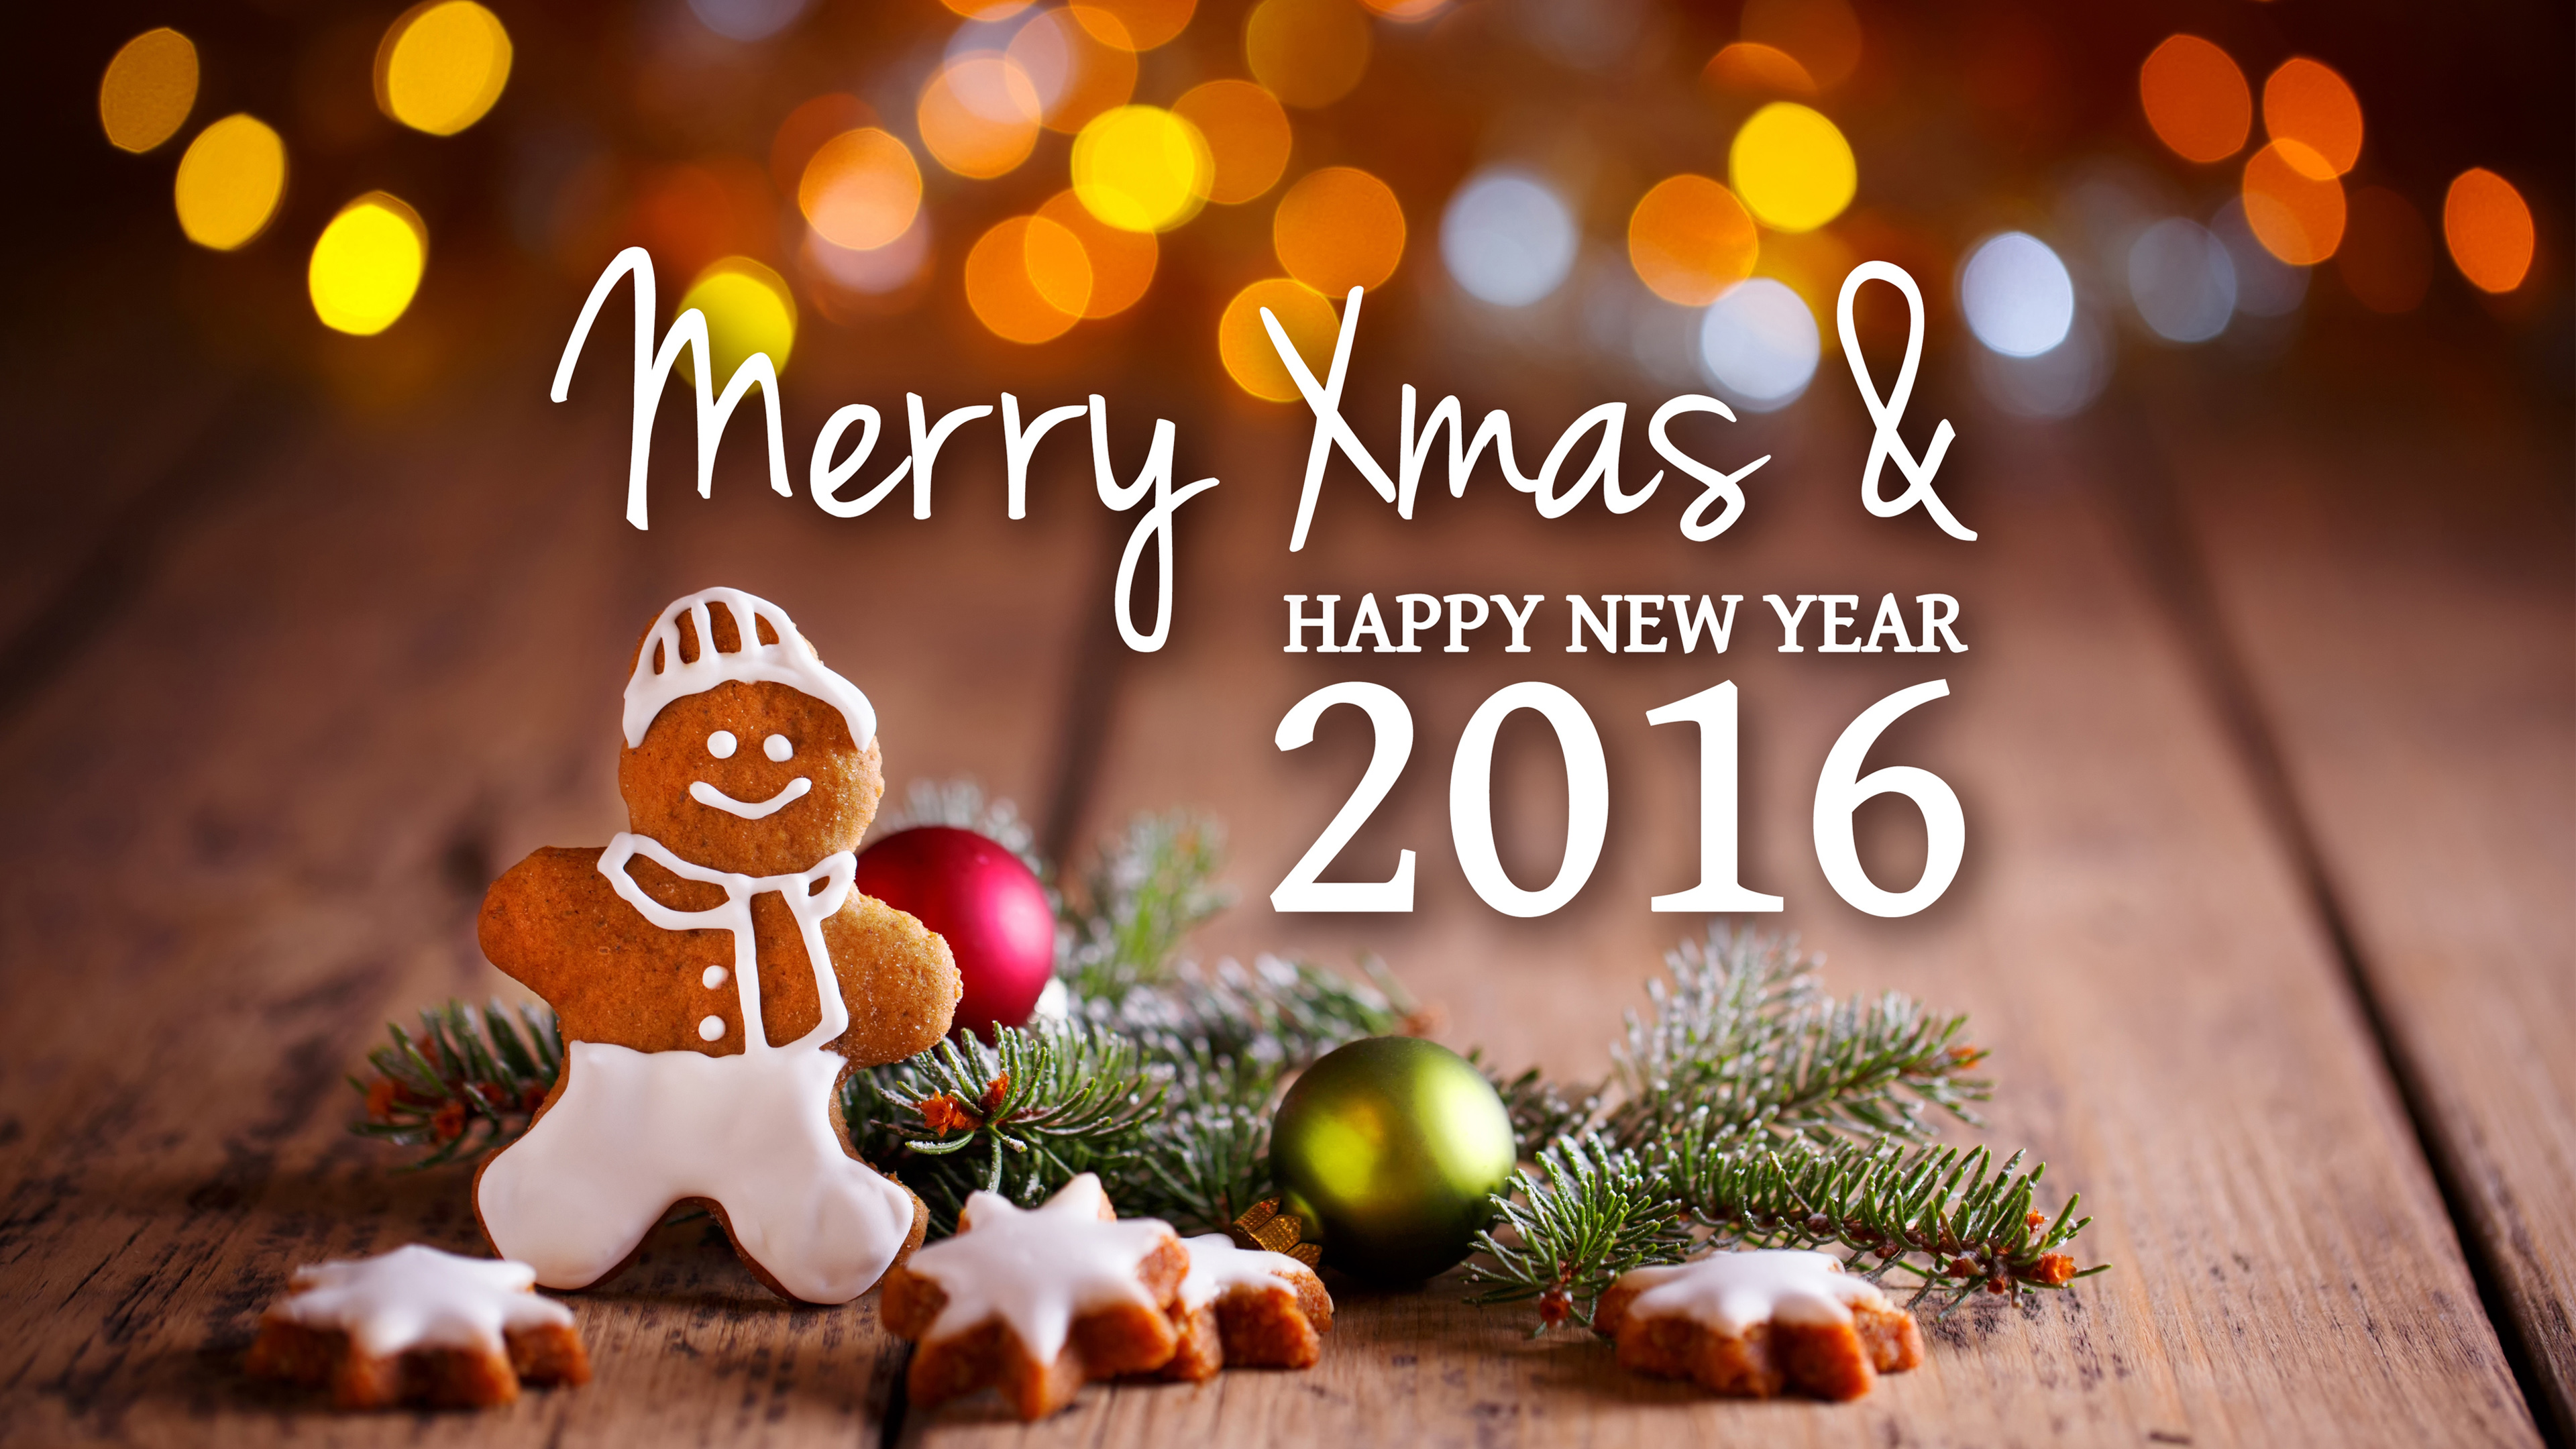 Merry Xmas New Year 2016 wallpaper